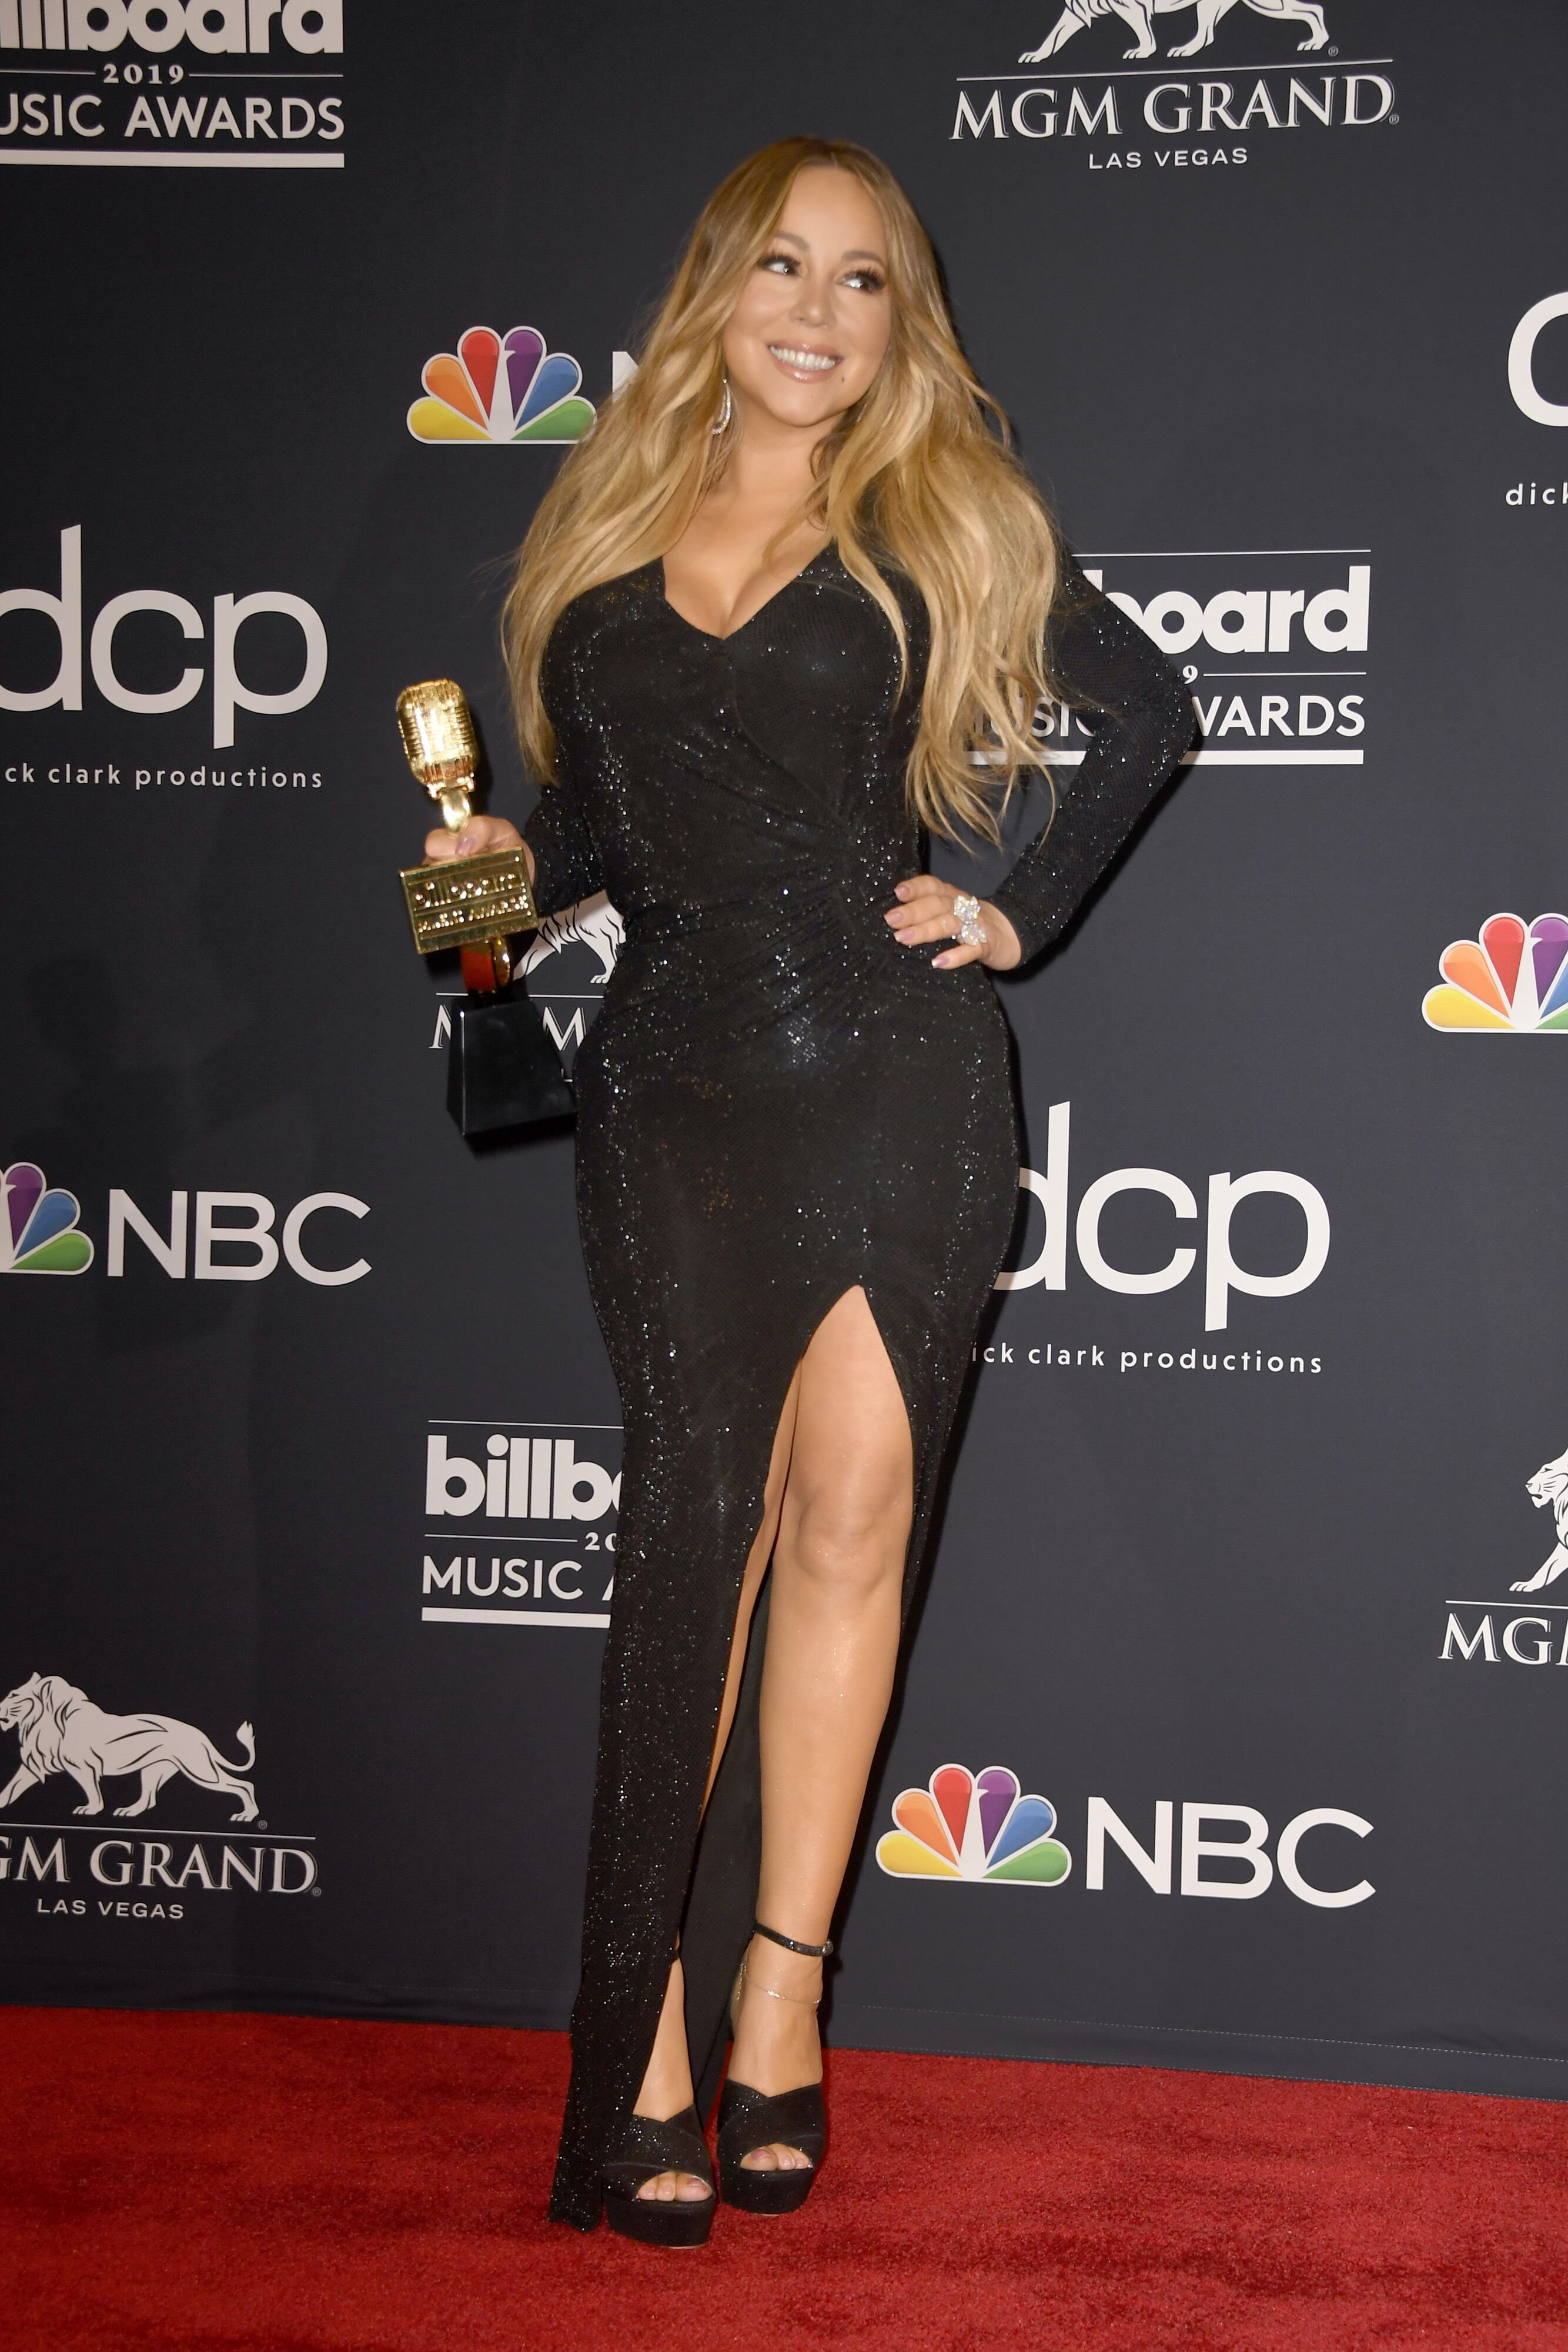 Mariah Carey at the Billboard Music Awards 2019 Red Carpet | Source: Getty Images/GlobalImagesUkraine